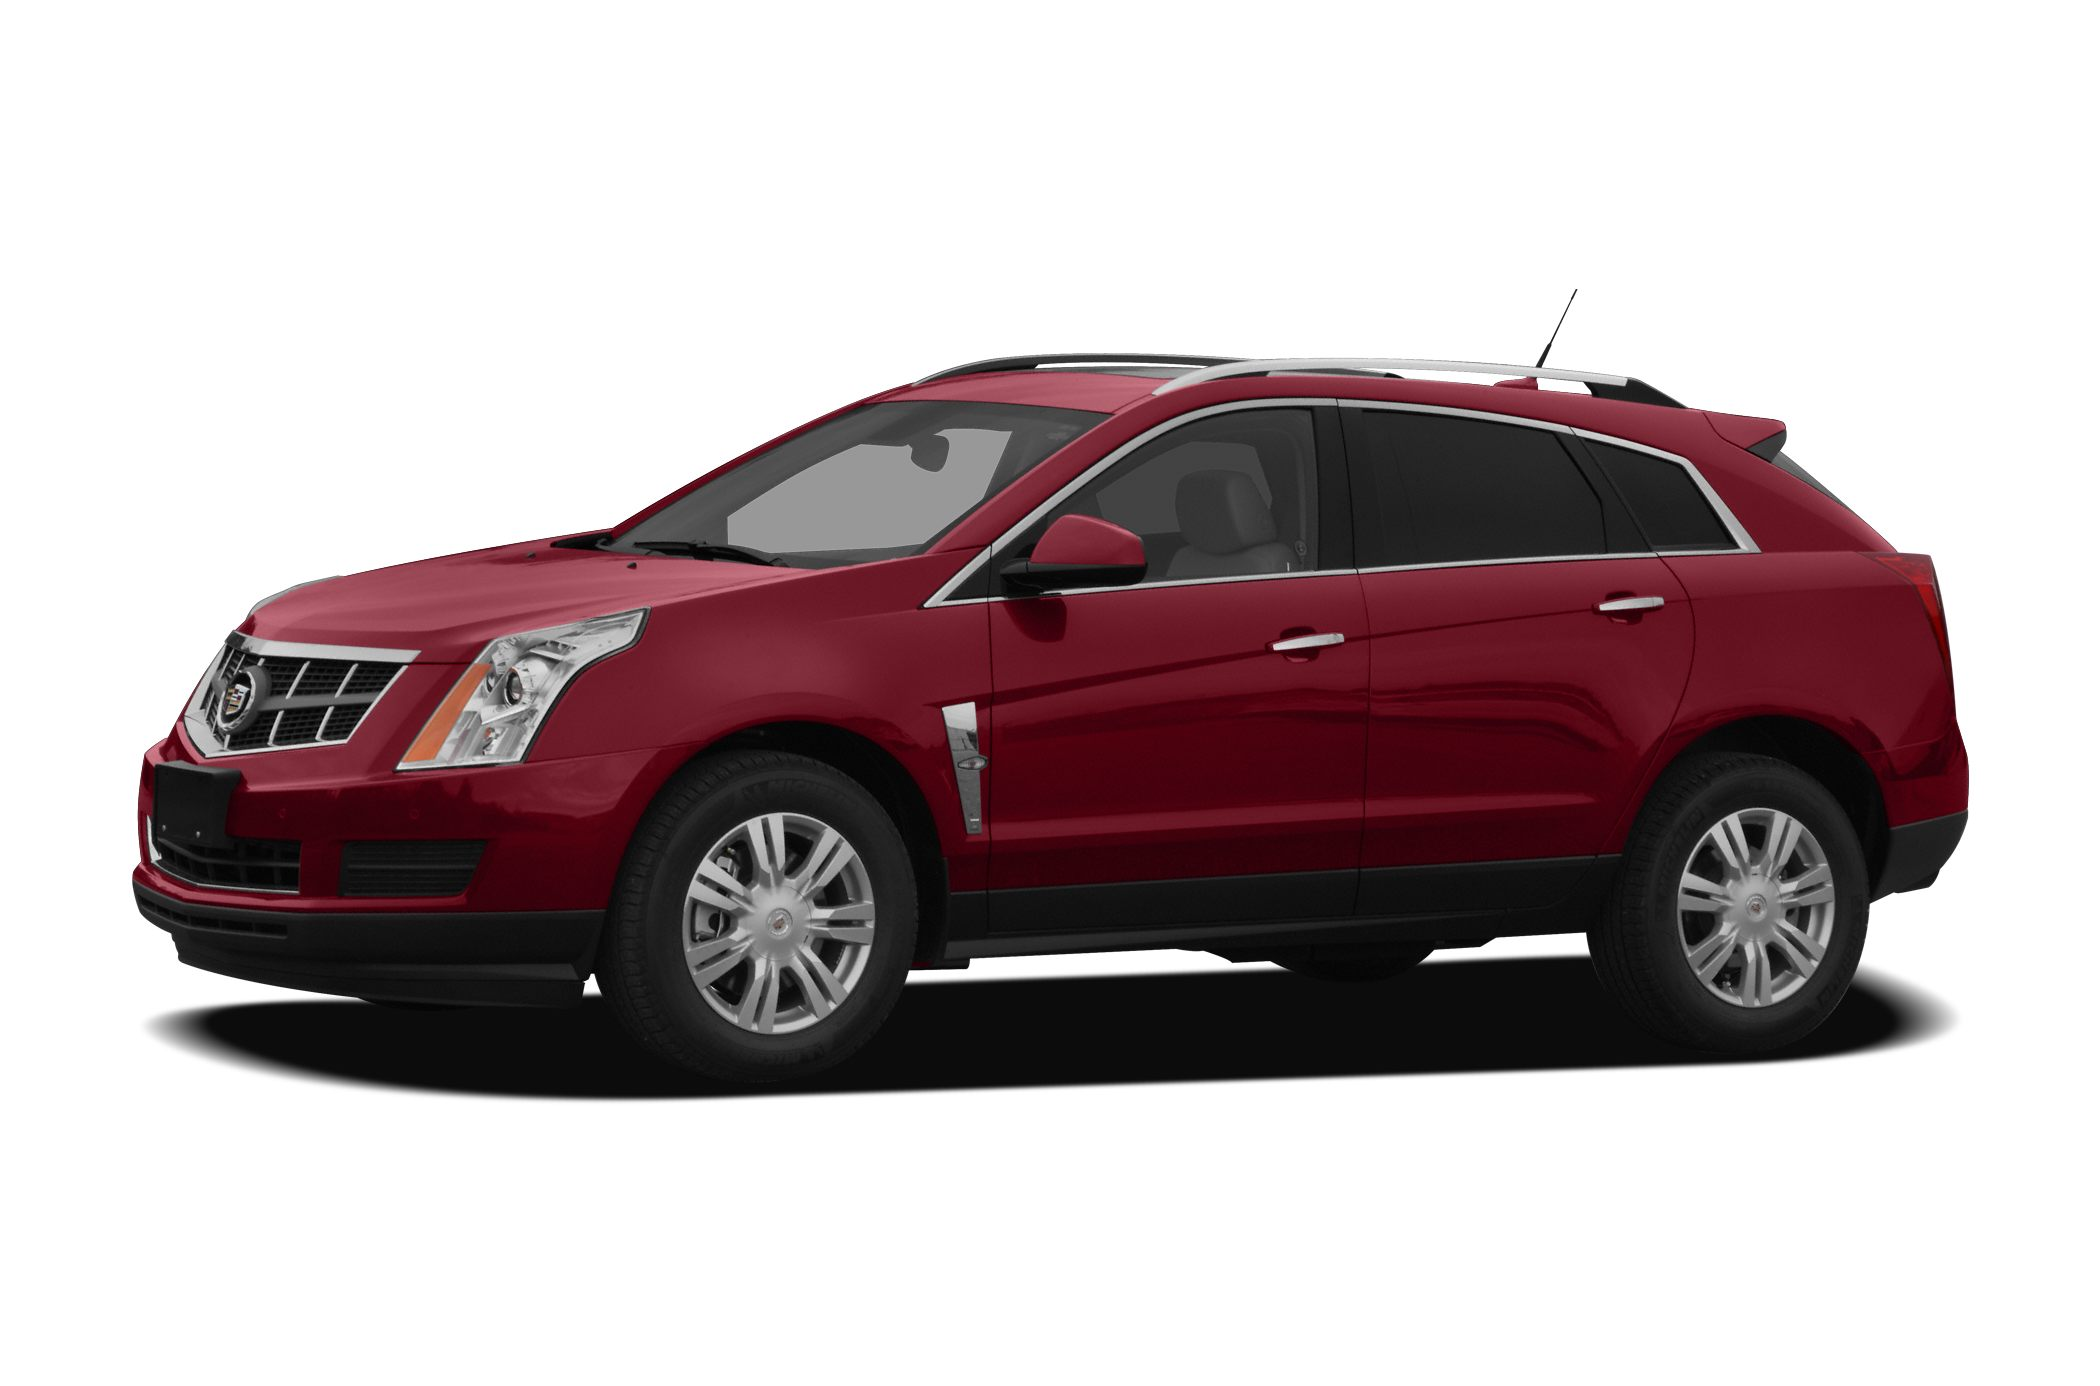 2012 Cadillac SRX Luxury Voted 1 Preowned Dealer in Metro Boston 2013  2014 and Voted Best Deal